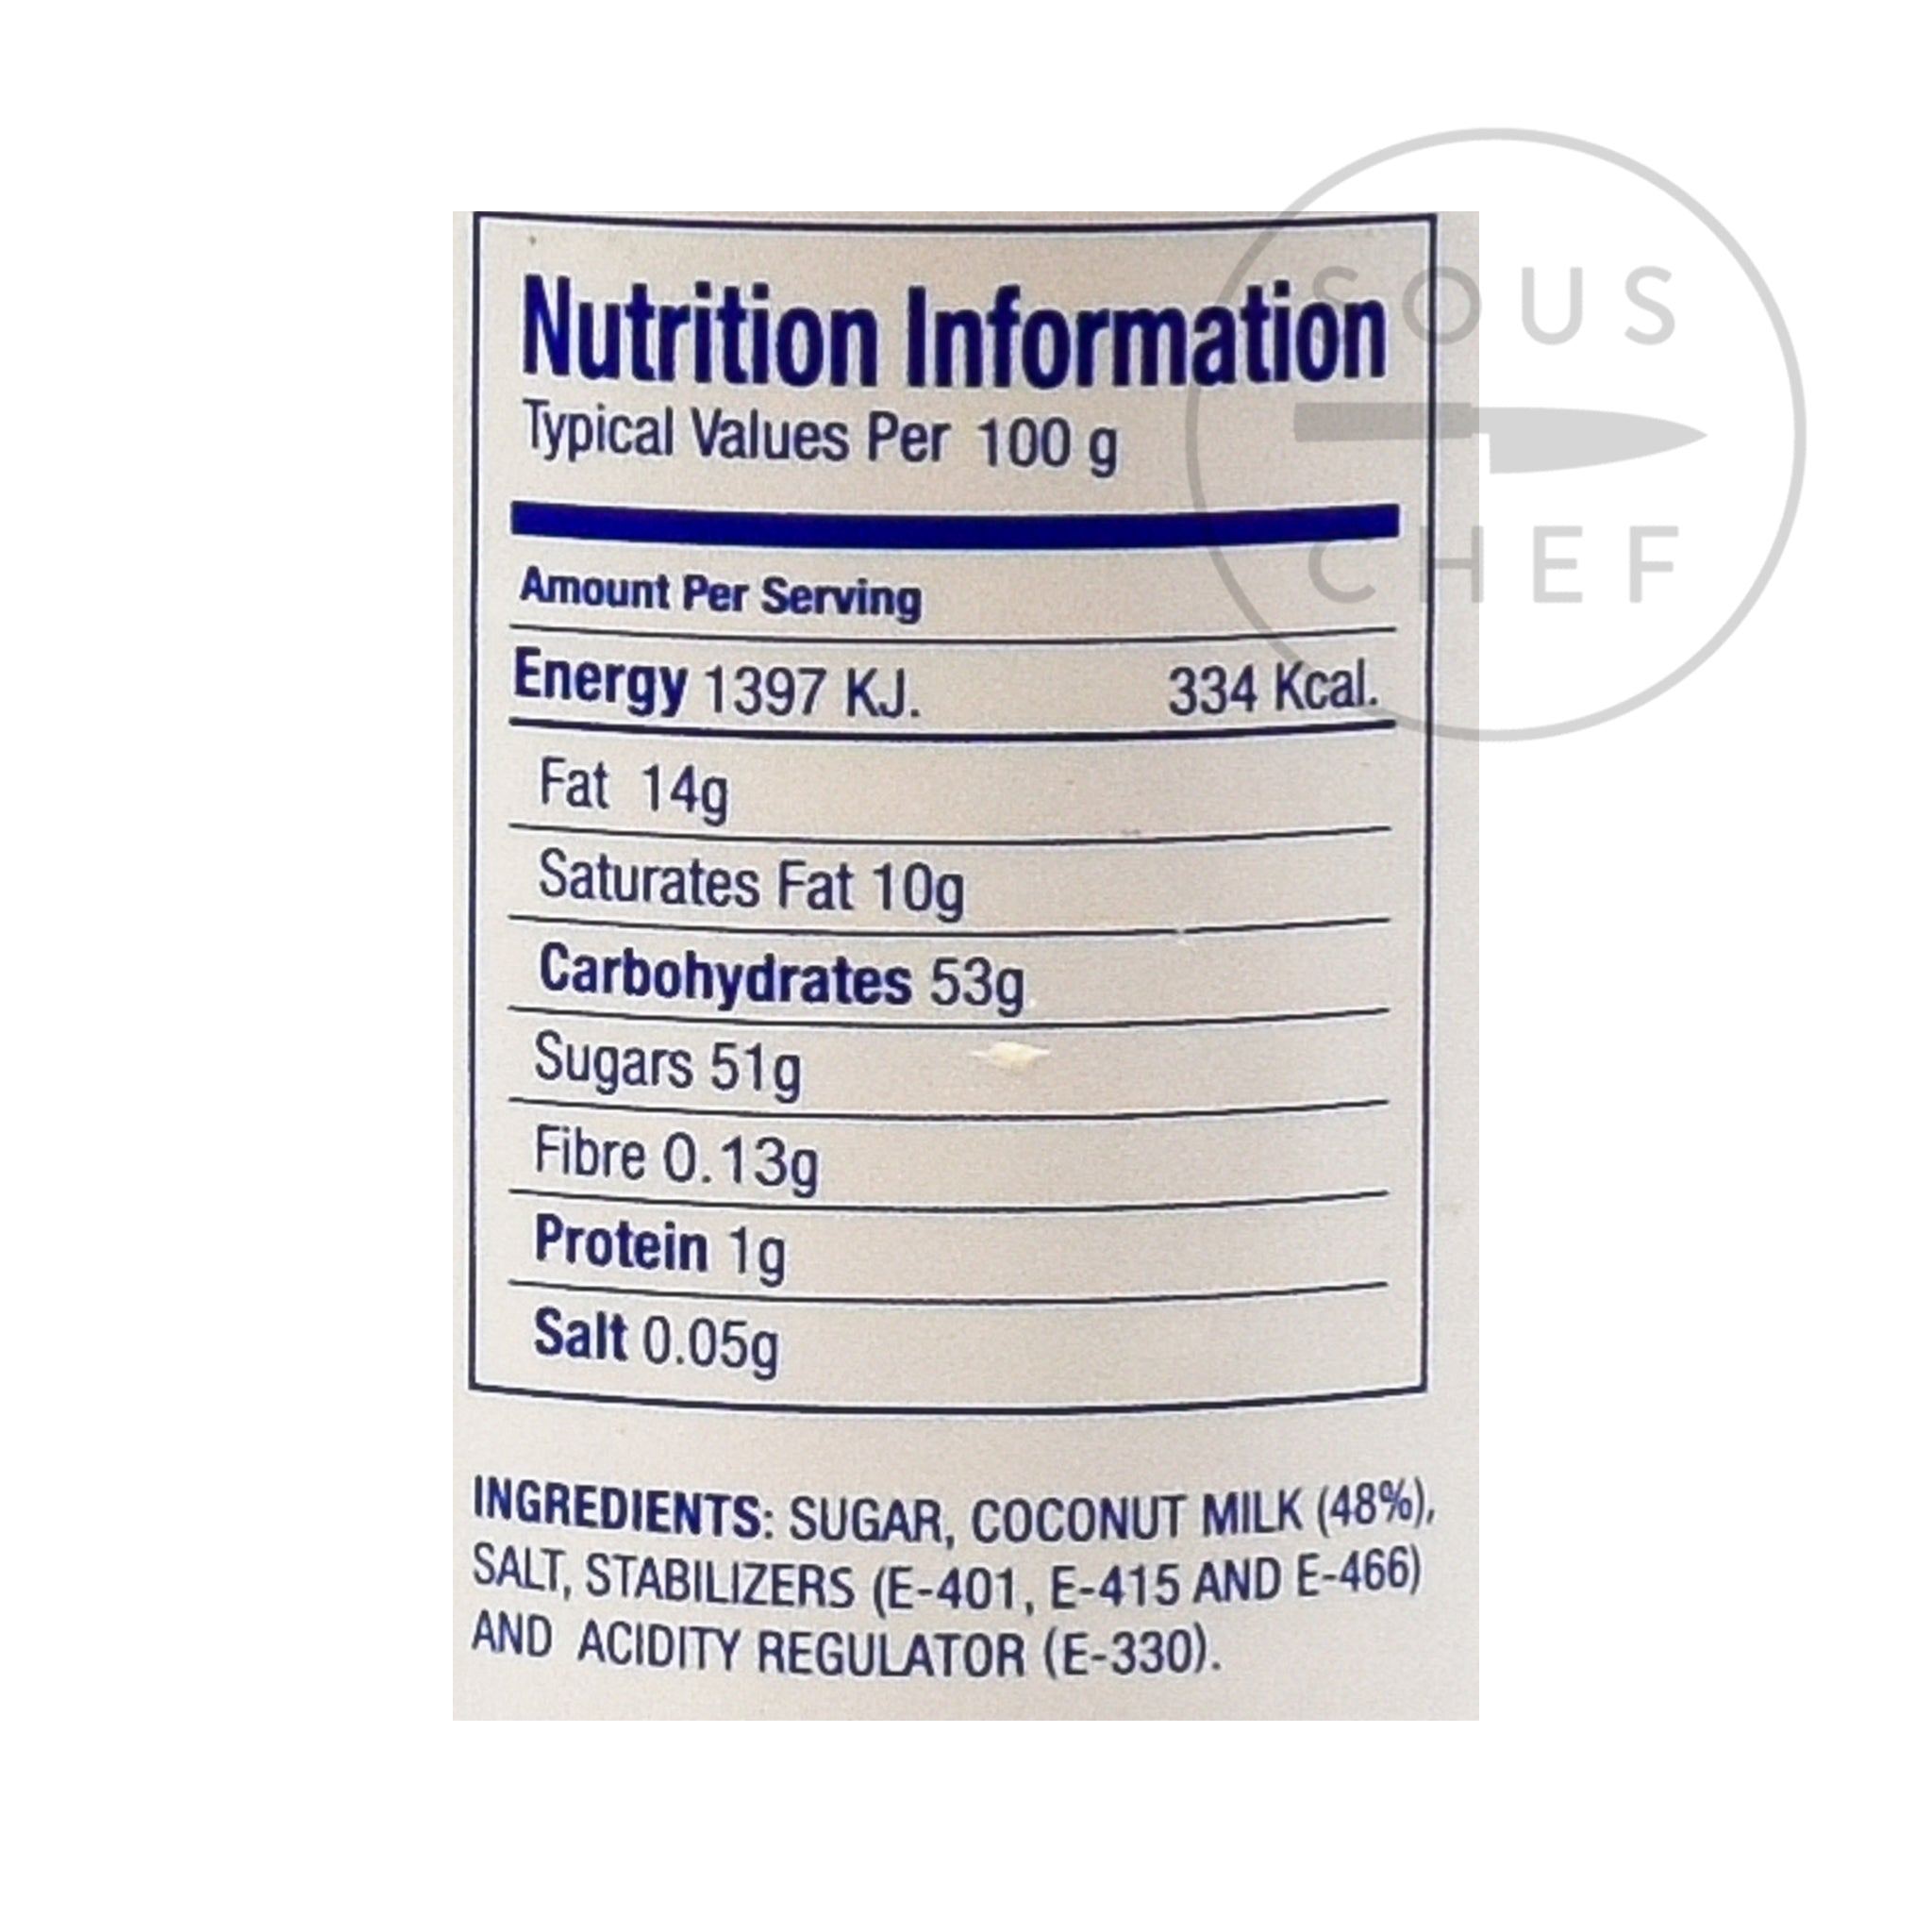 Coco Lopez - Cream of Coconut 425g nutritional information ingredients